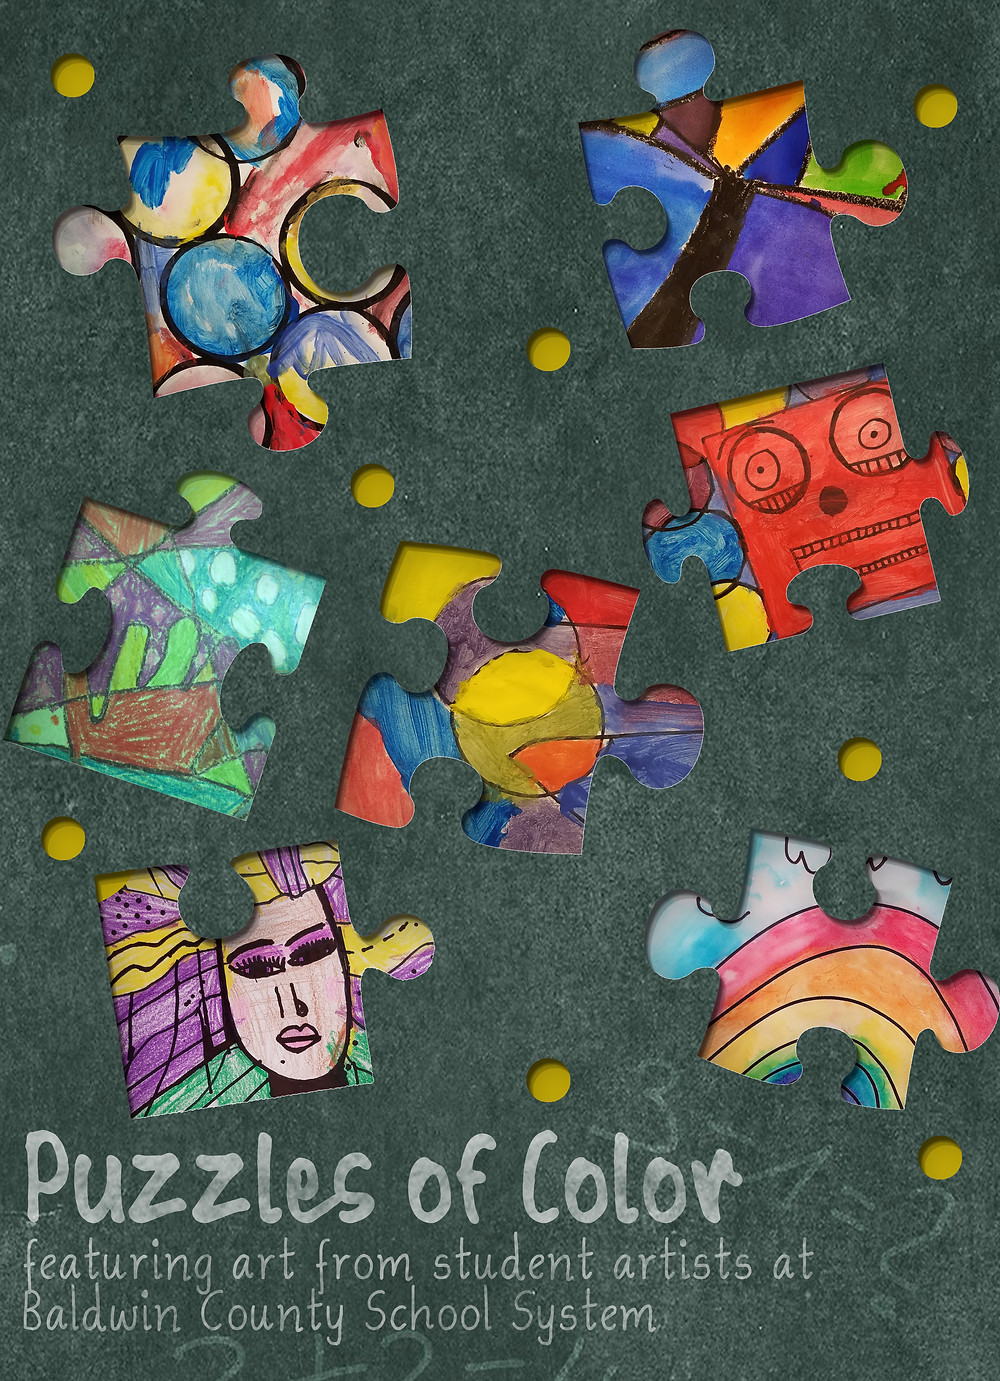 Flier for Puzzles of Color